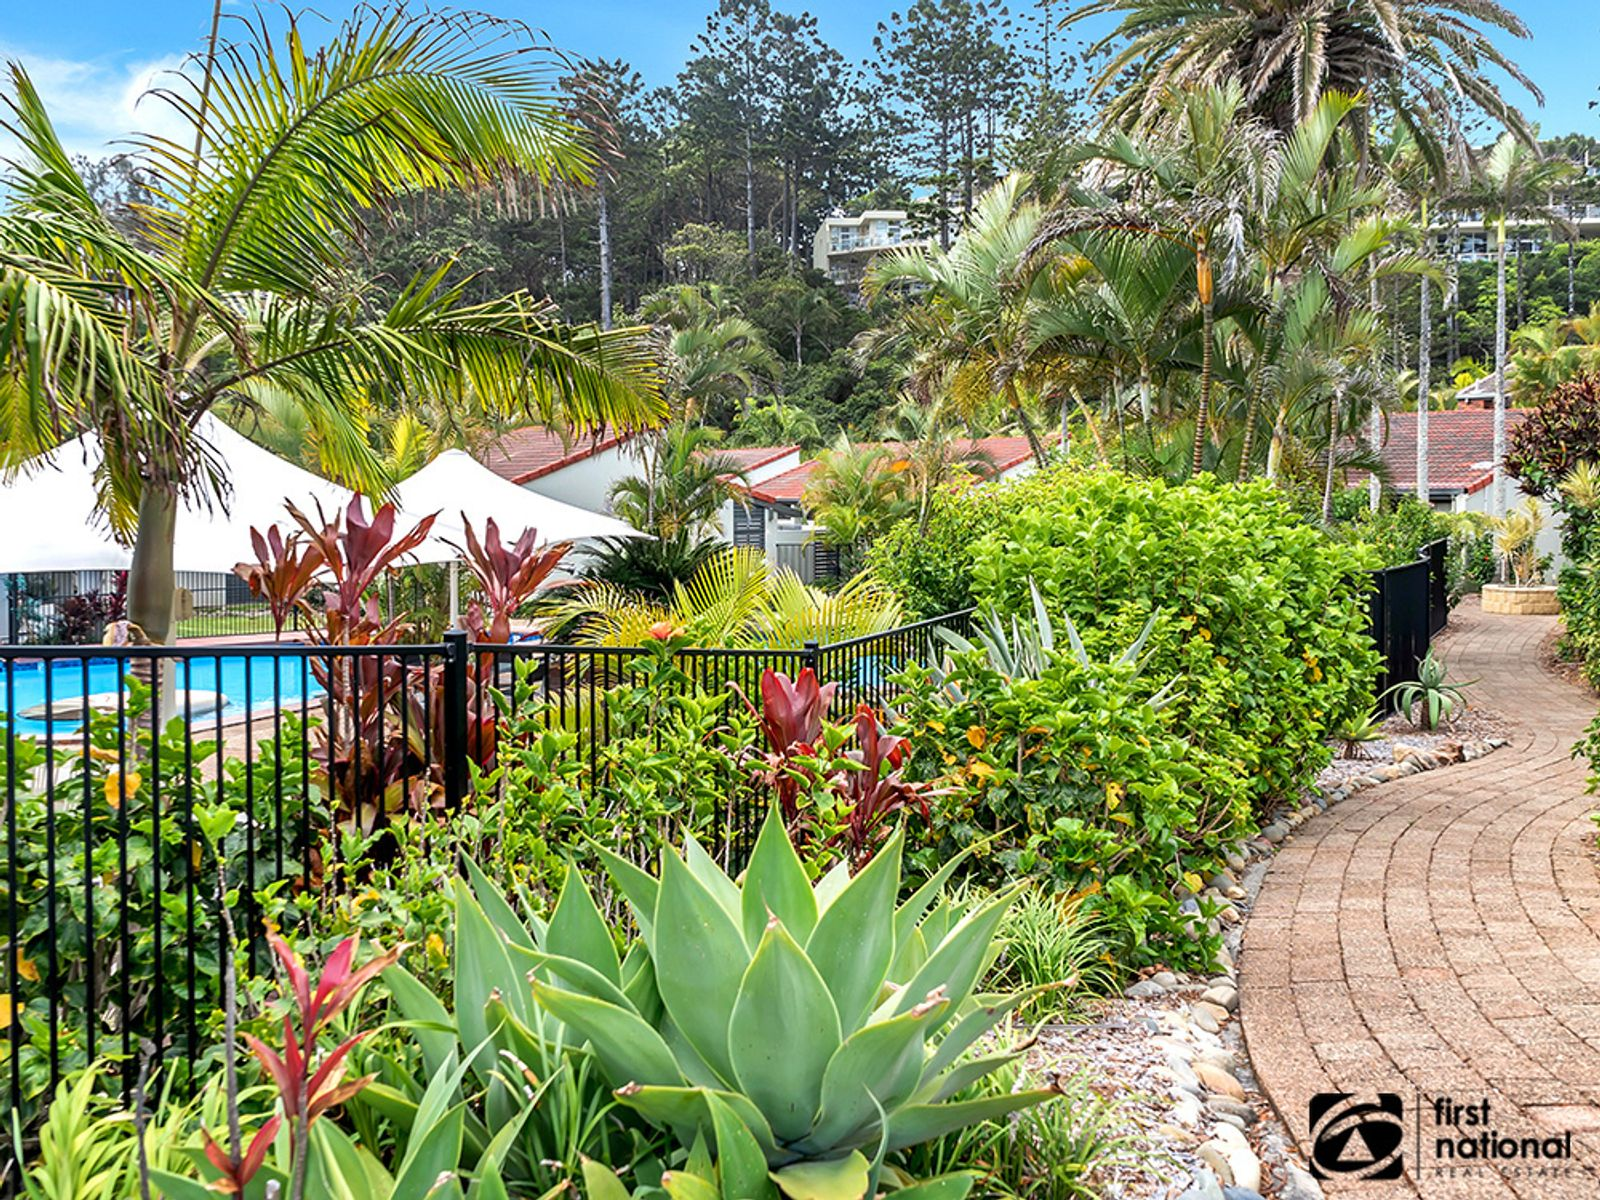 110/8 Solitary Islands Way, Sapphire Beach, NSW 2450